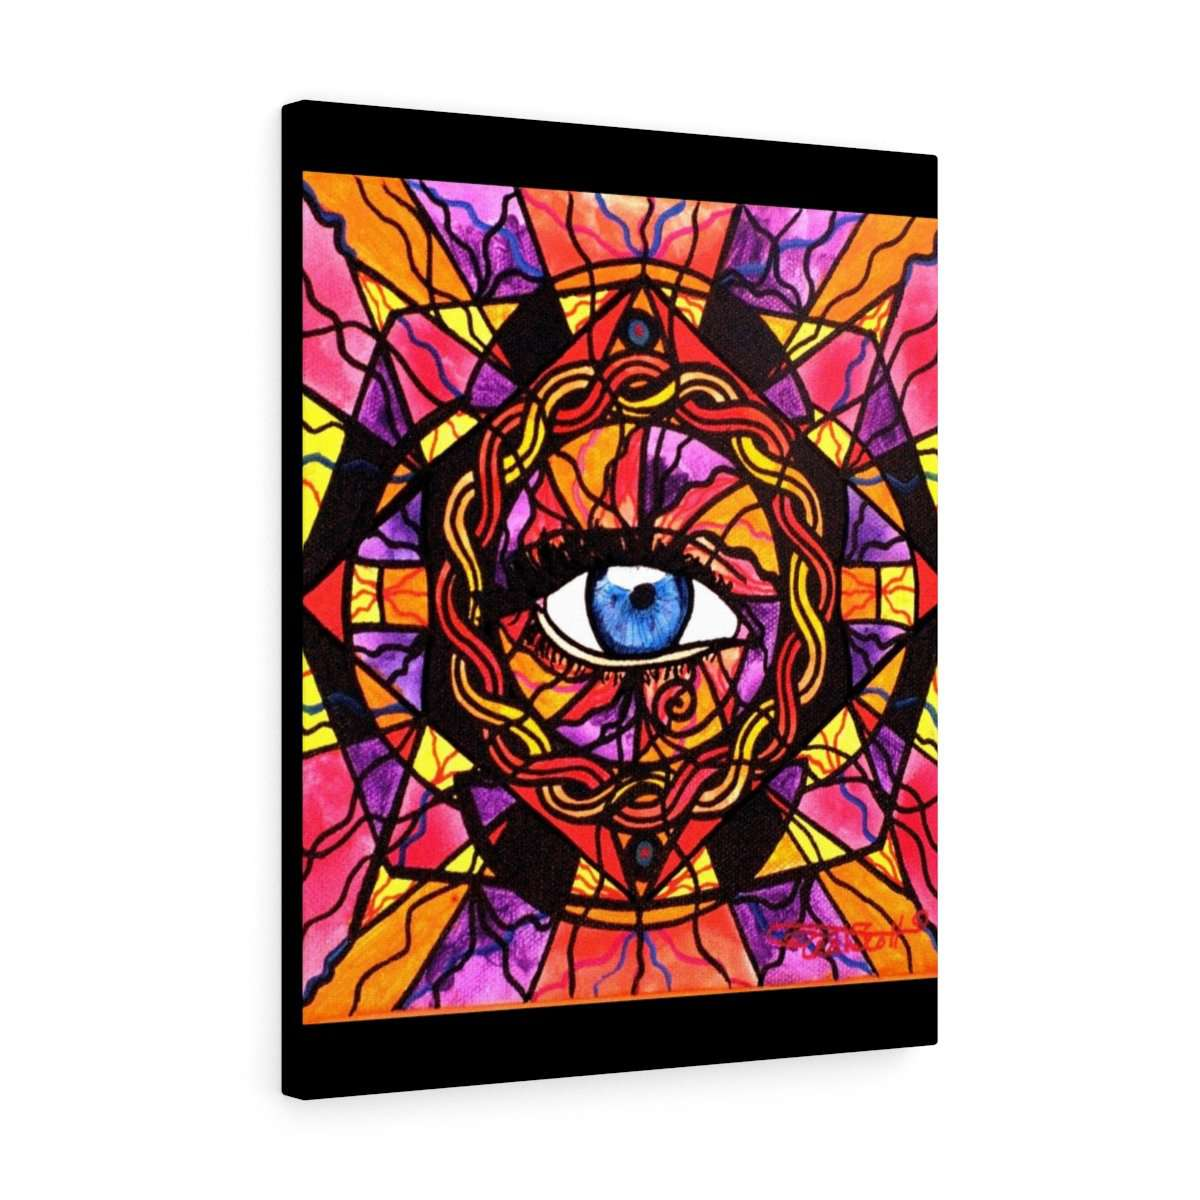 Confident Self Expression - Stretched canvas